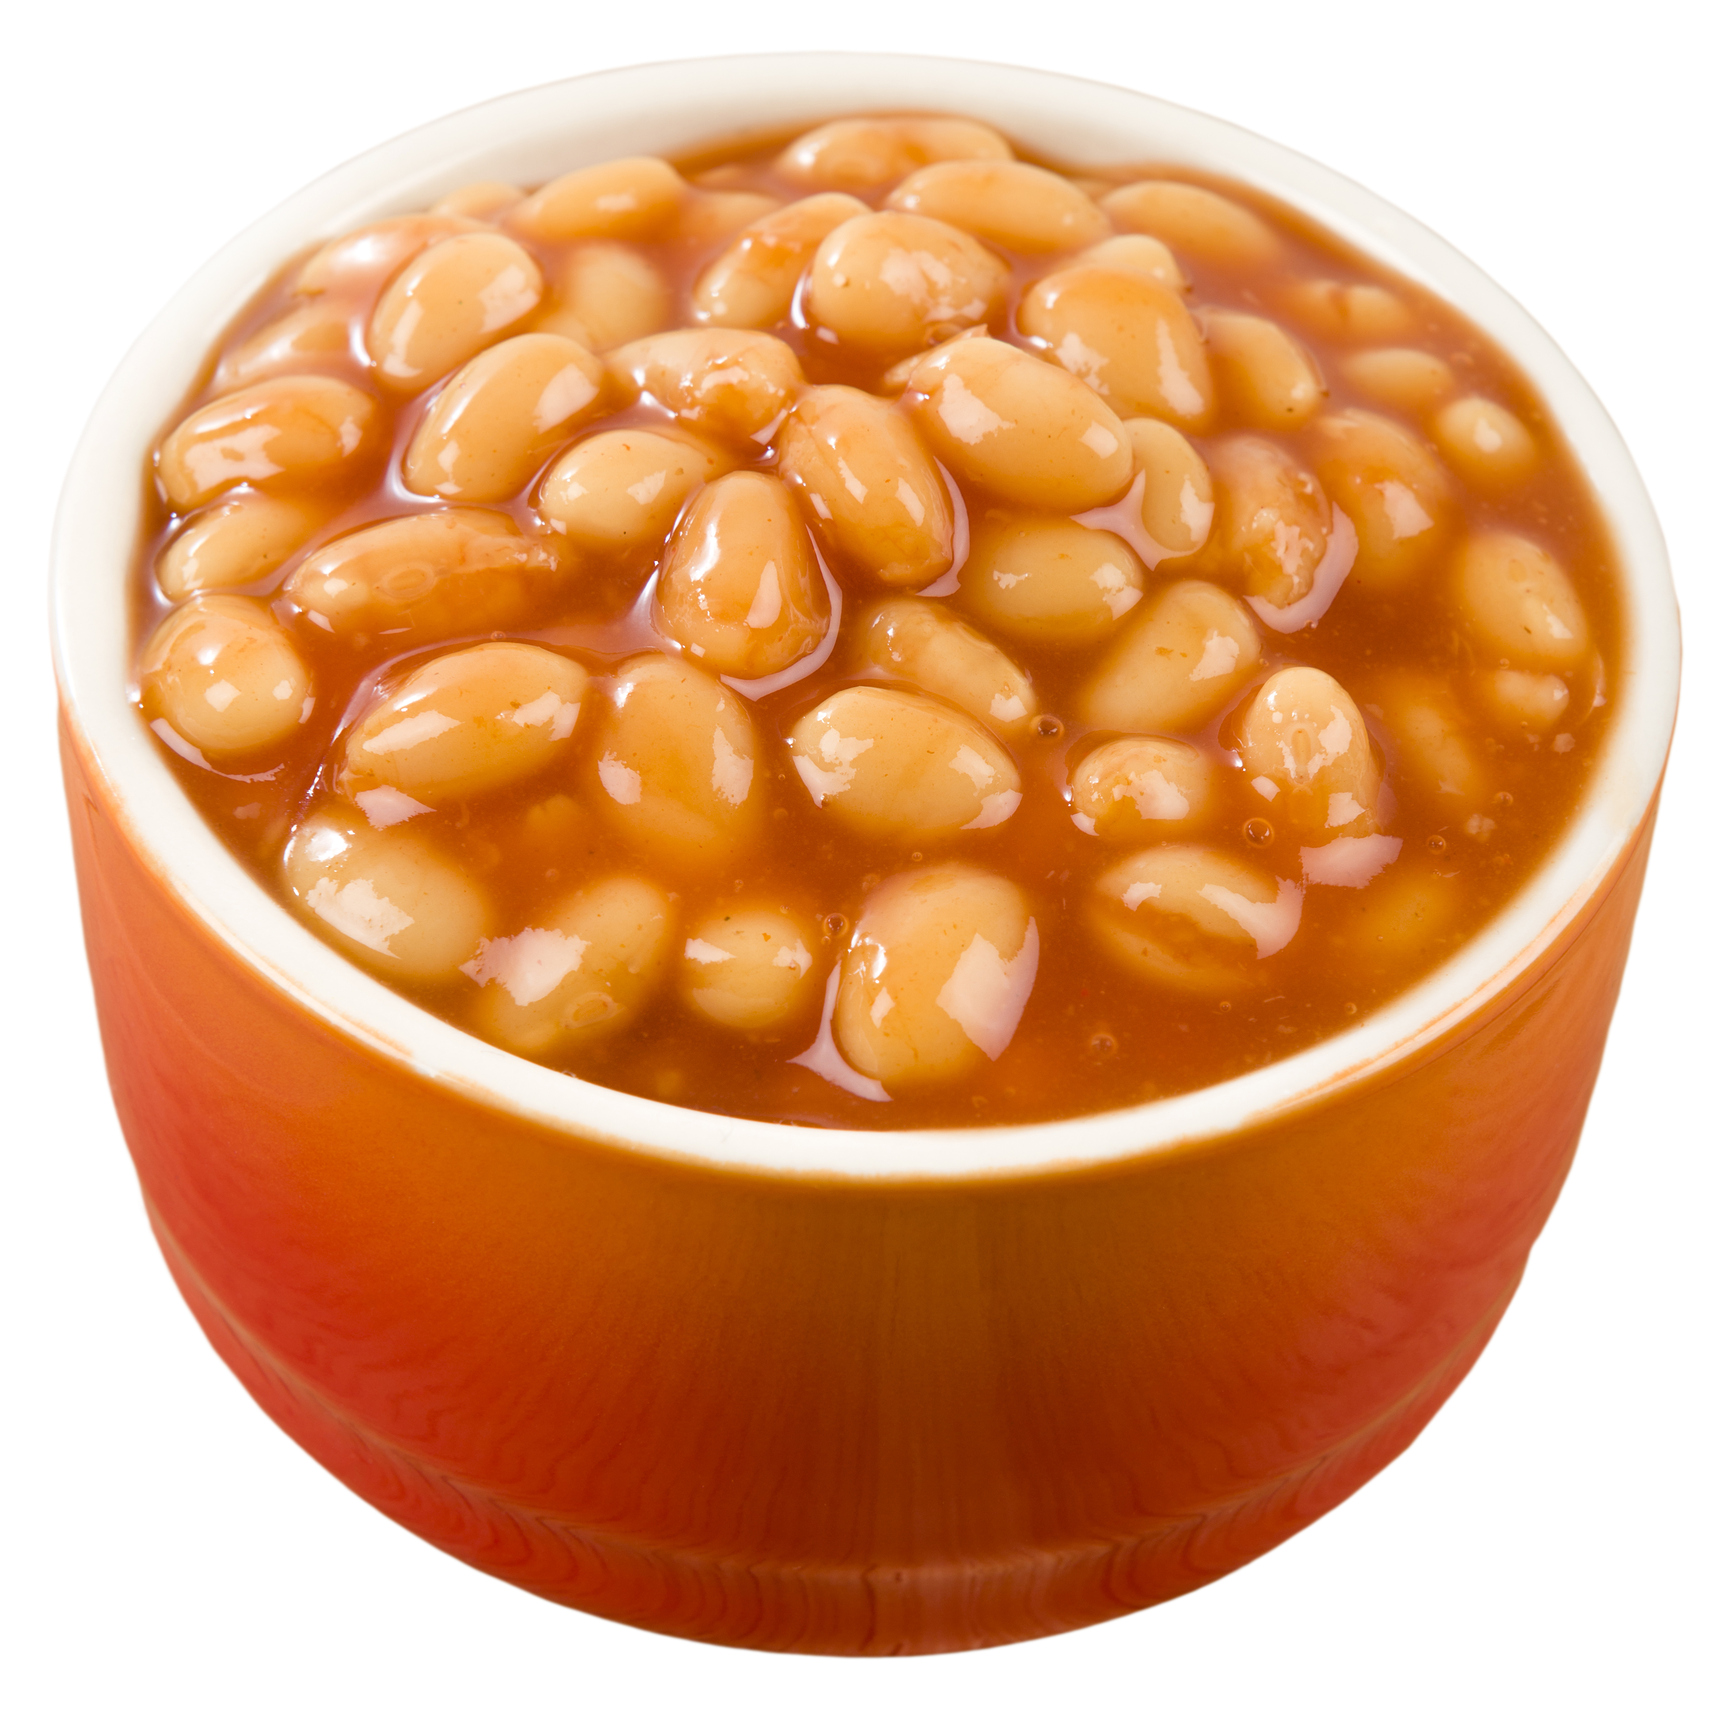 Bowl of baked beans in tomato sauce (Thinkstock/PA)